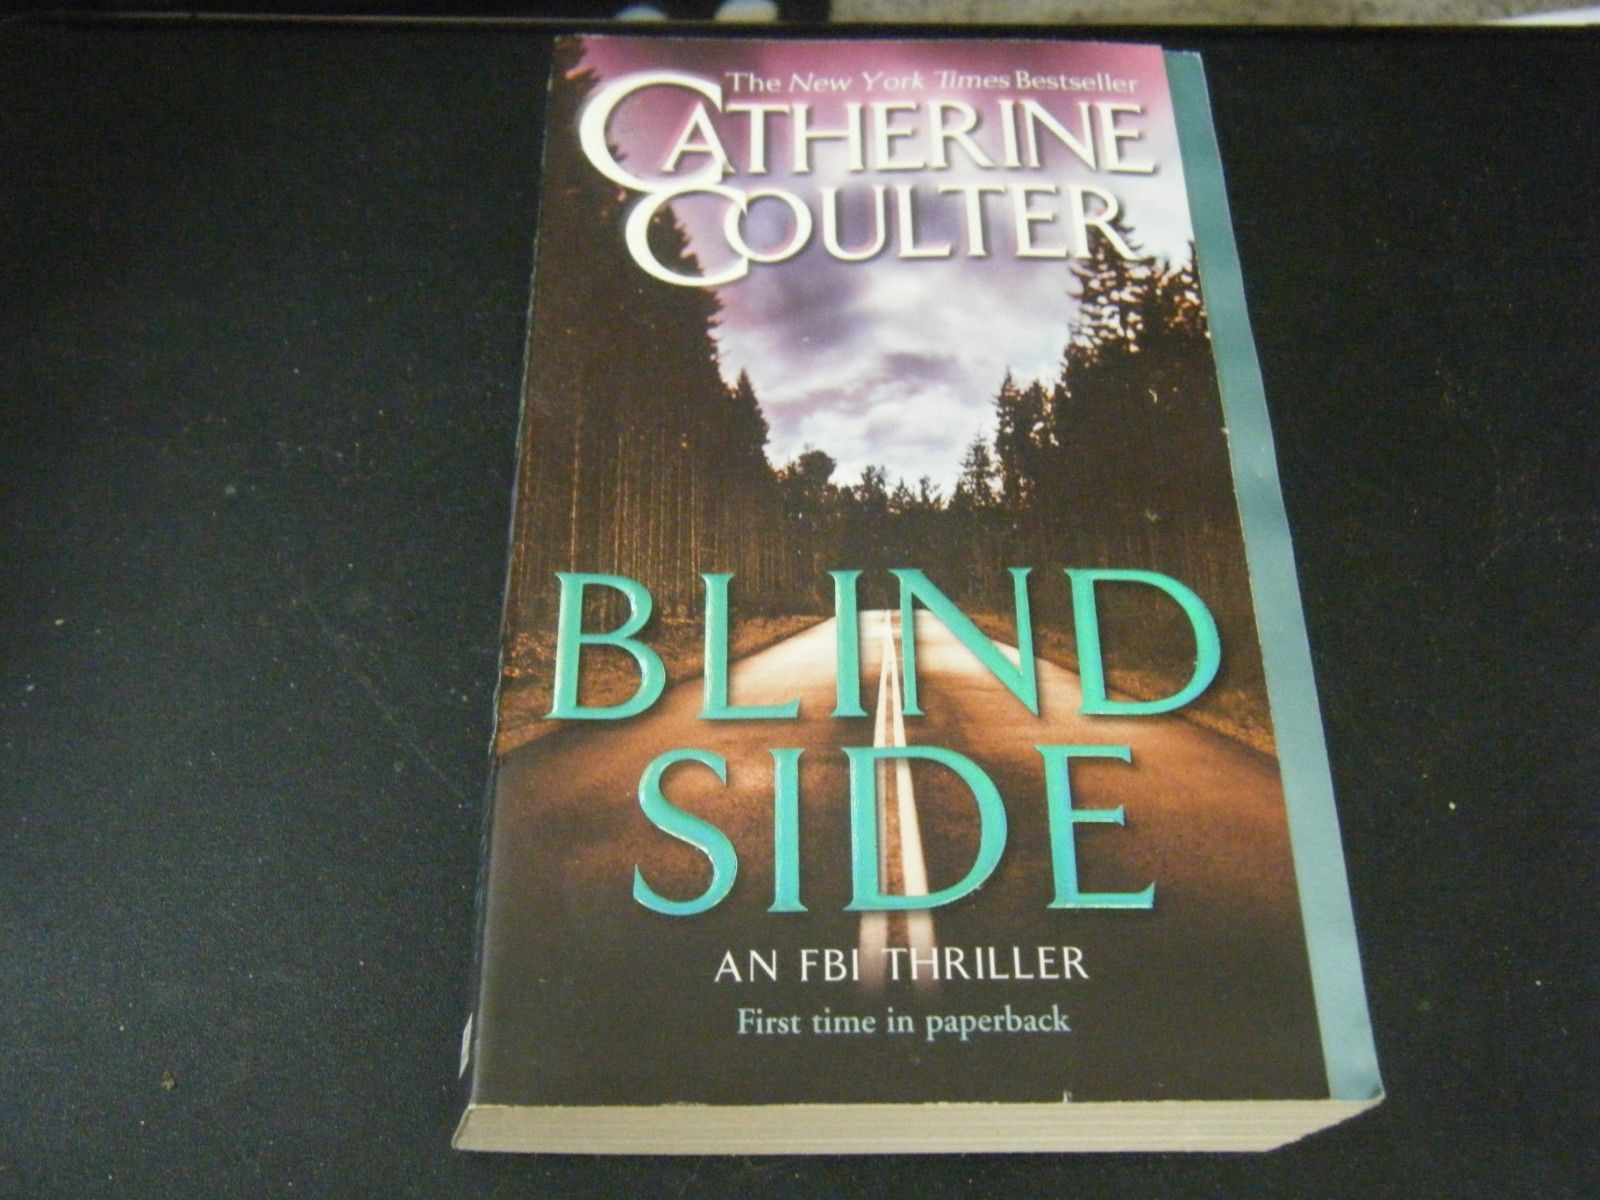 Primary image for An FBI Thriller: Blindside by Catherine Coulter (2004, Paperback)